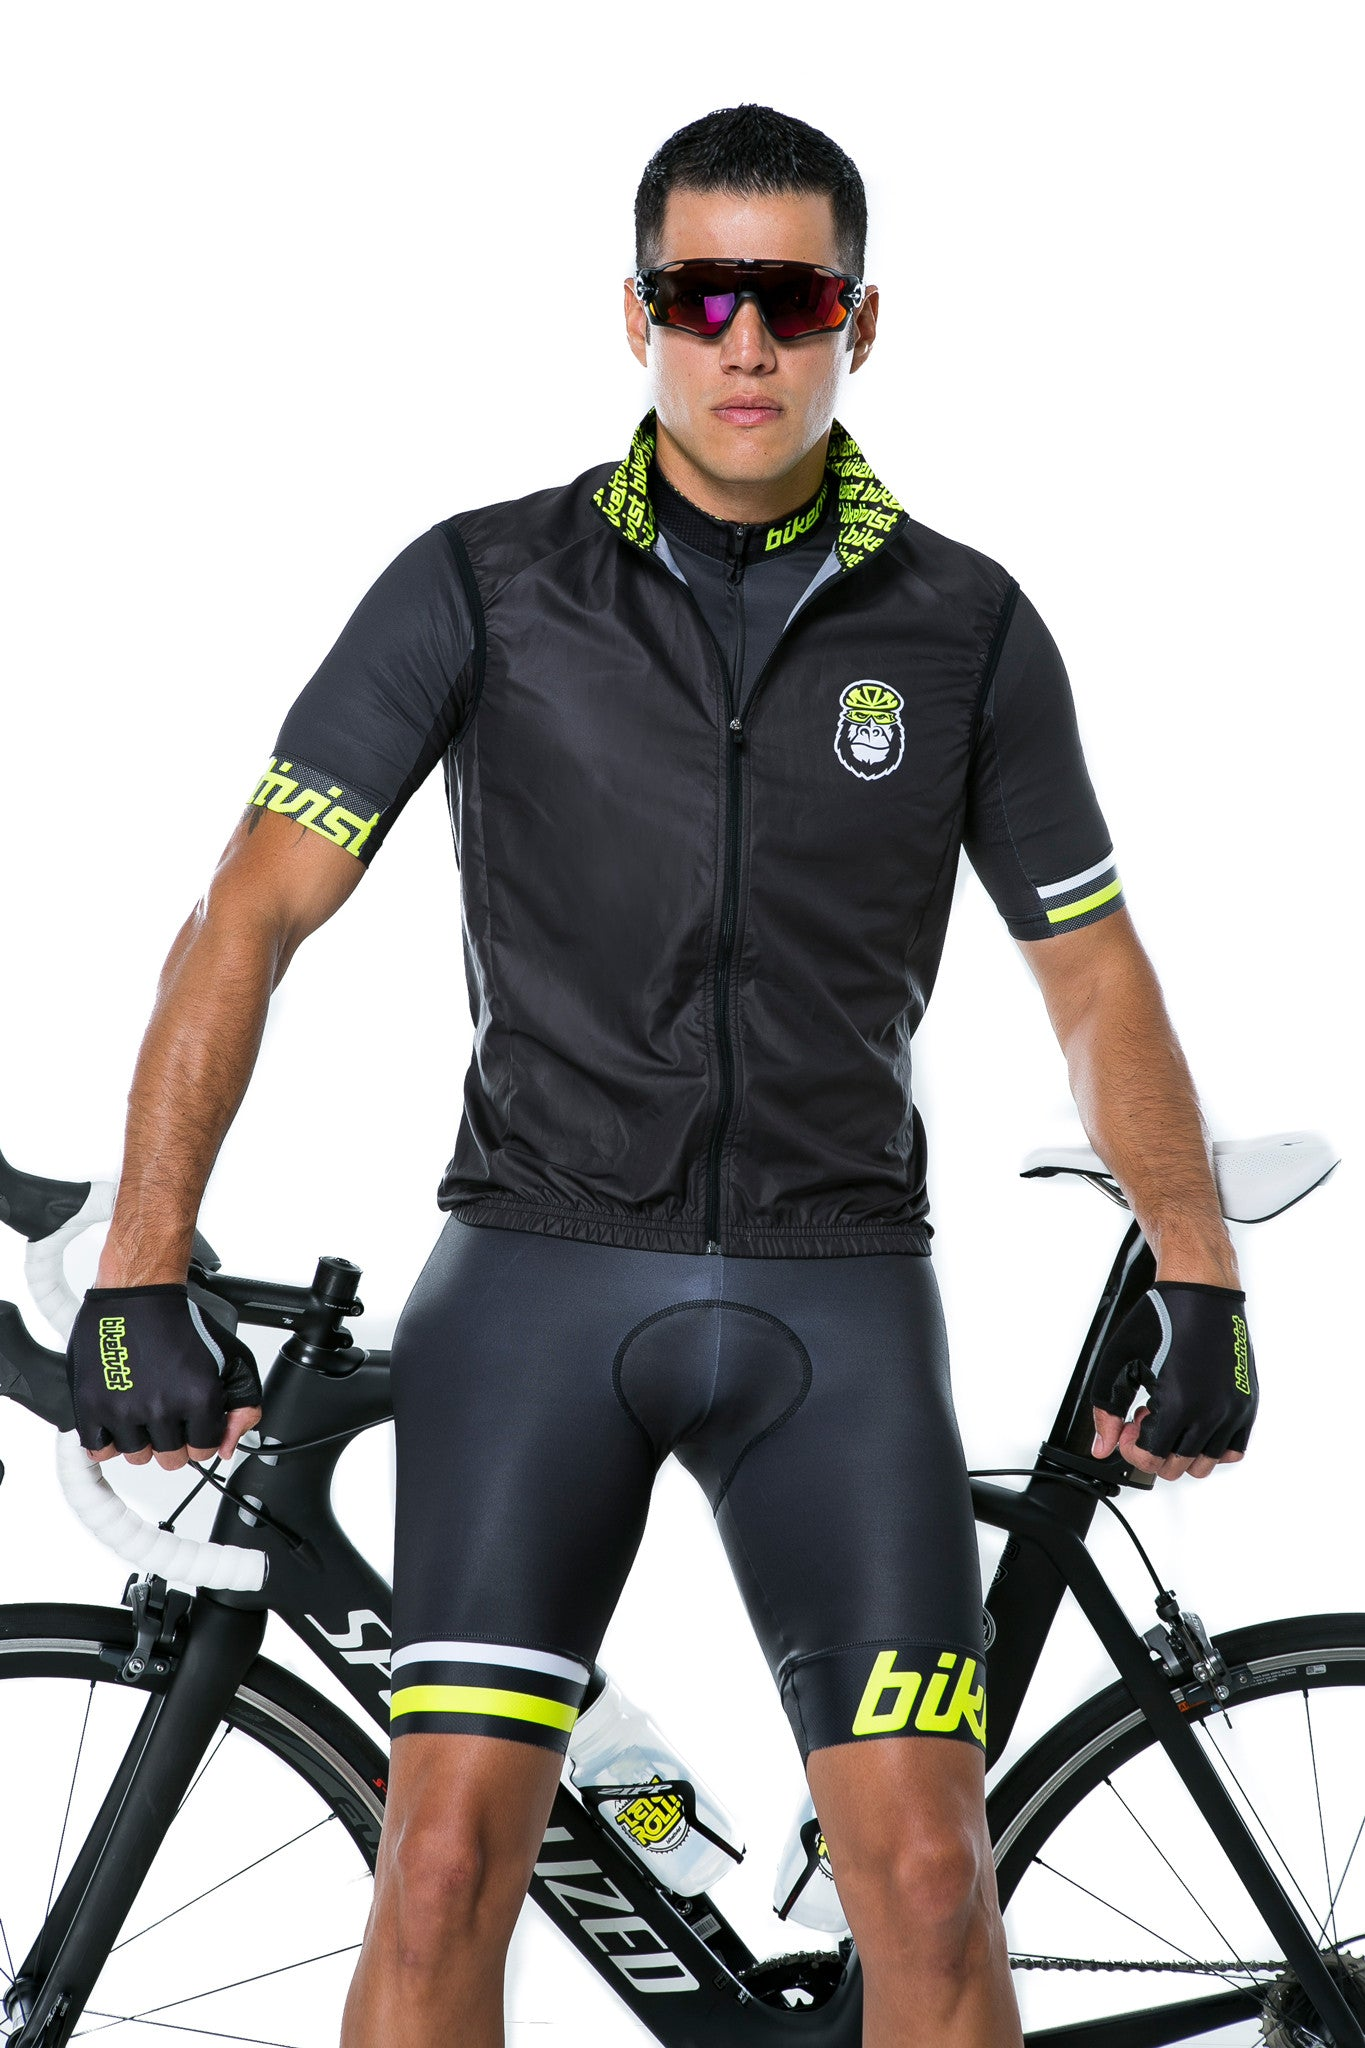 The Biketivist Lightweight Gilet (Vest) - Front view2